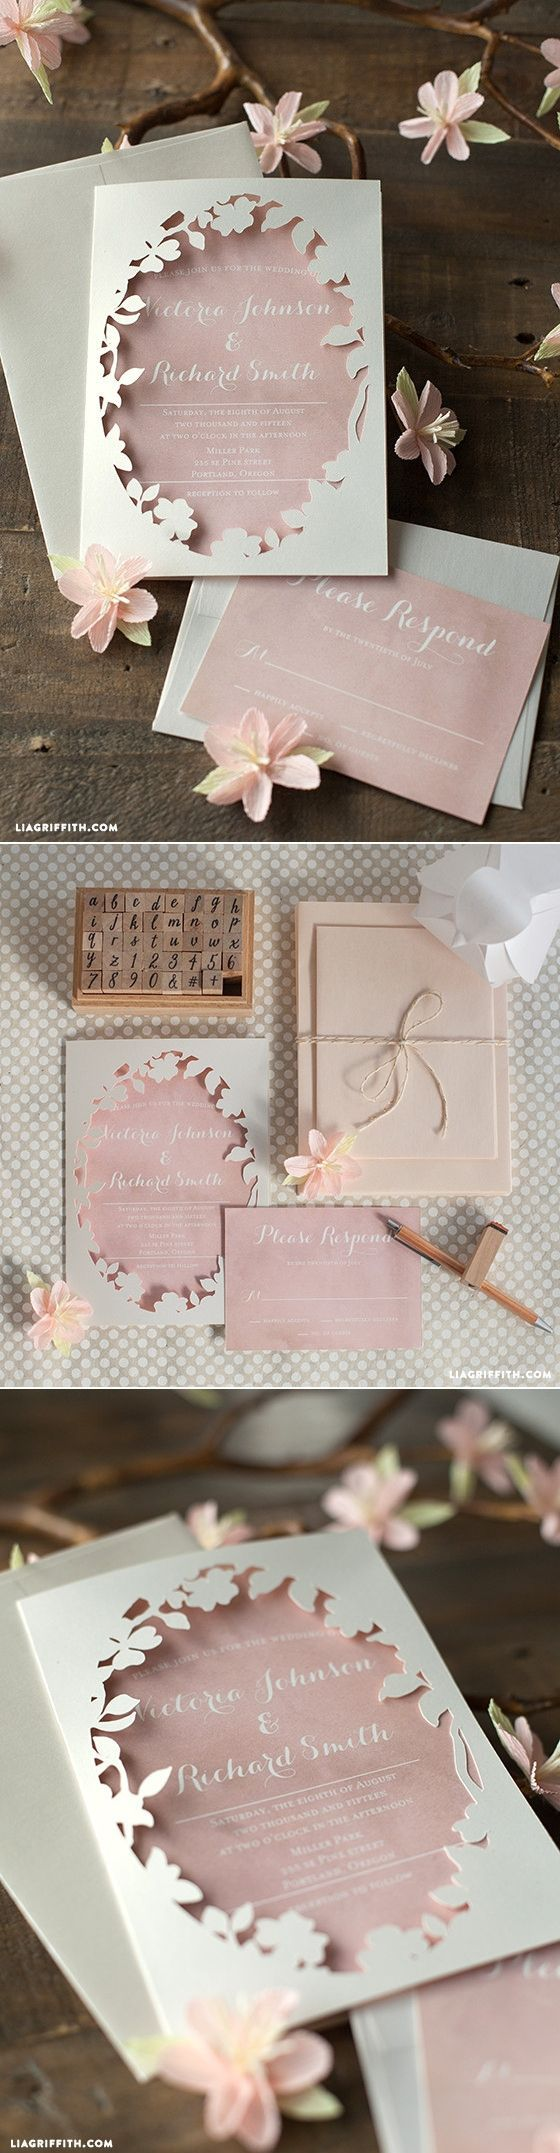 Spring Blossom Printable Wedding Invitations at www.LiaGriffith.com #diywedding #weddinginvite | thebeautyspotqld.com.au